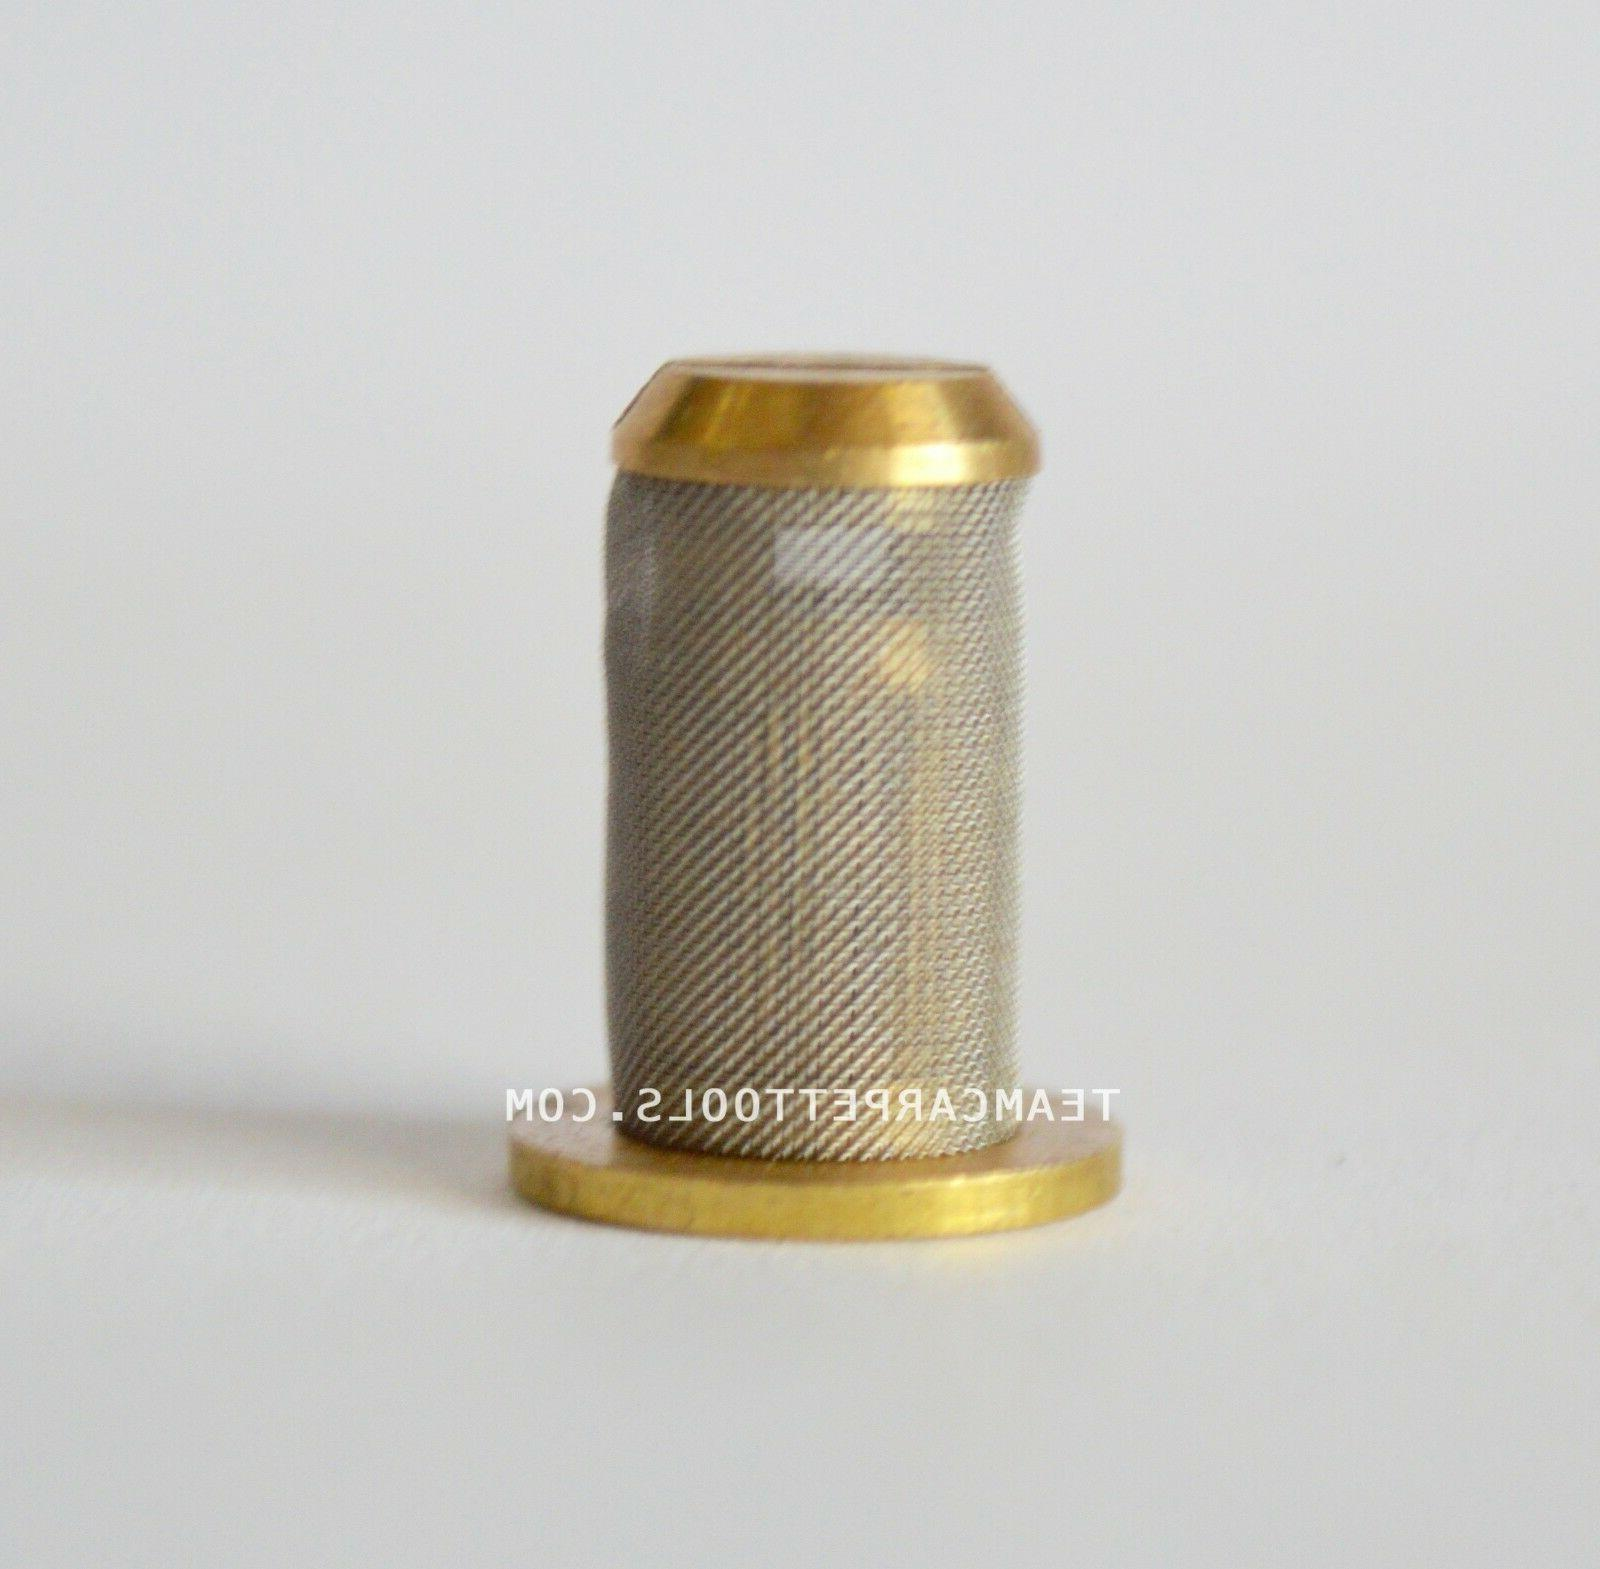 Tee Jets Strainer Nozzle Filter T Valves For Carpet Cleaning Wands T Jets 11004